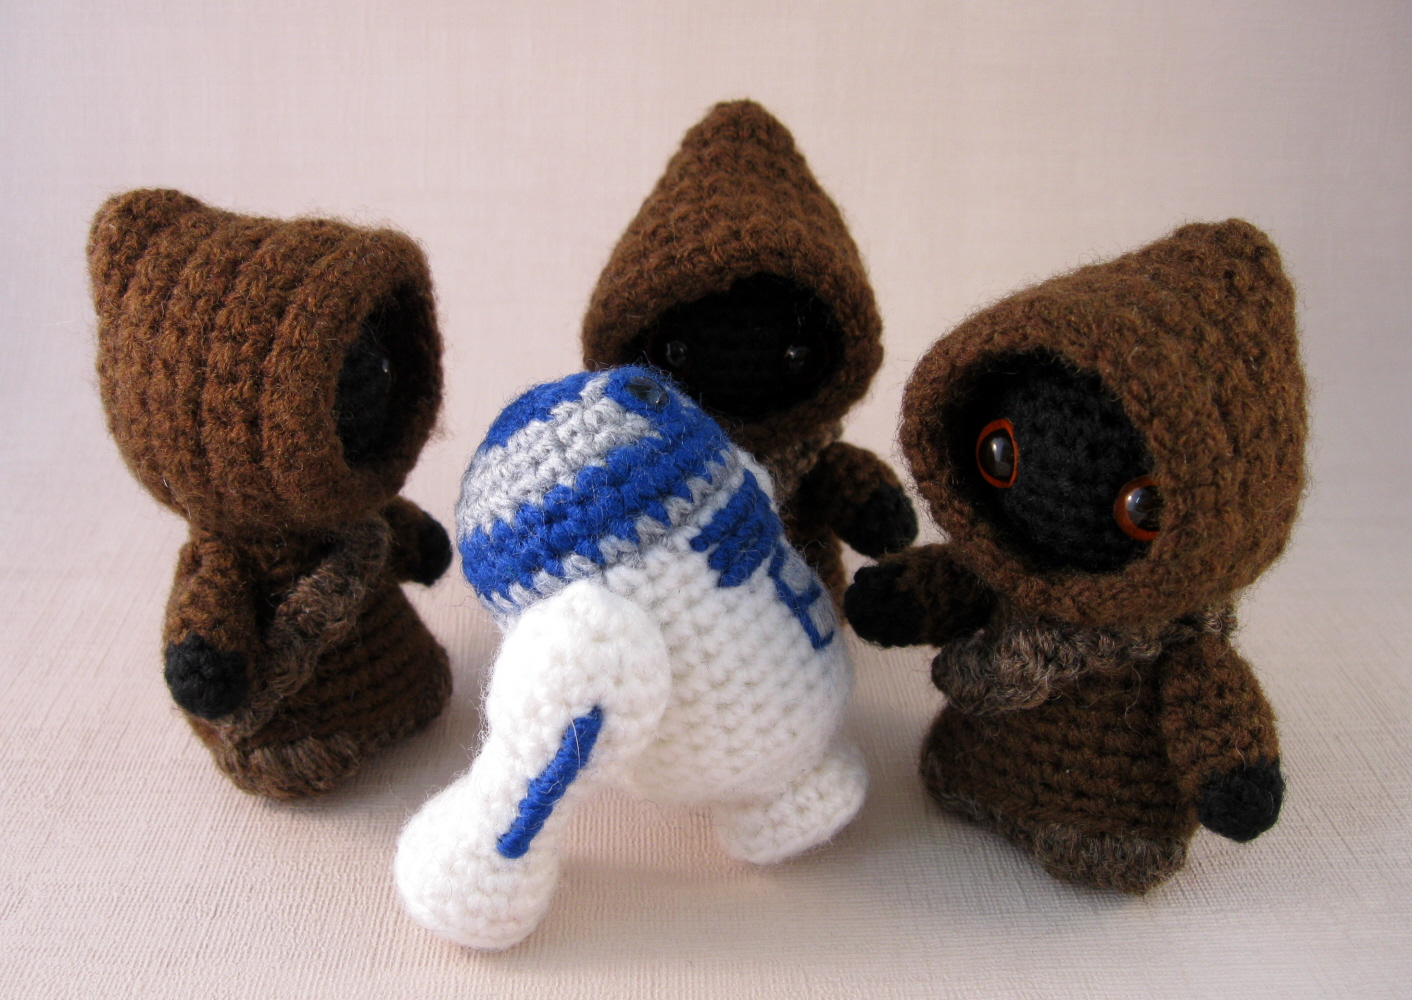 LucyRavenscar - Crochet Creatures: Utini! It\'s a new Jawa pattern!